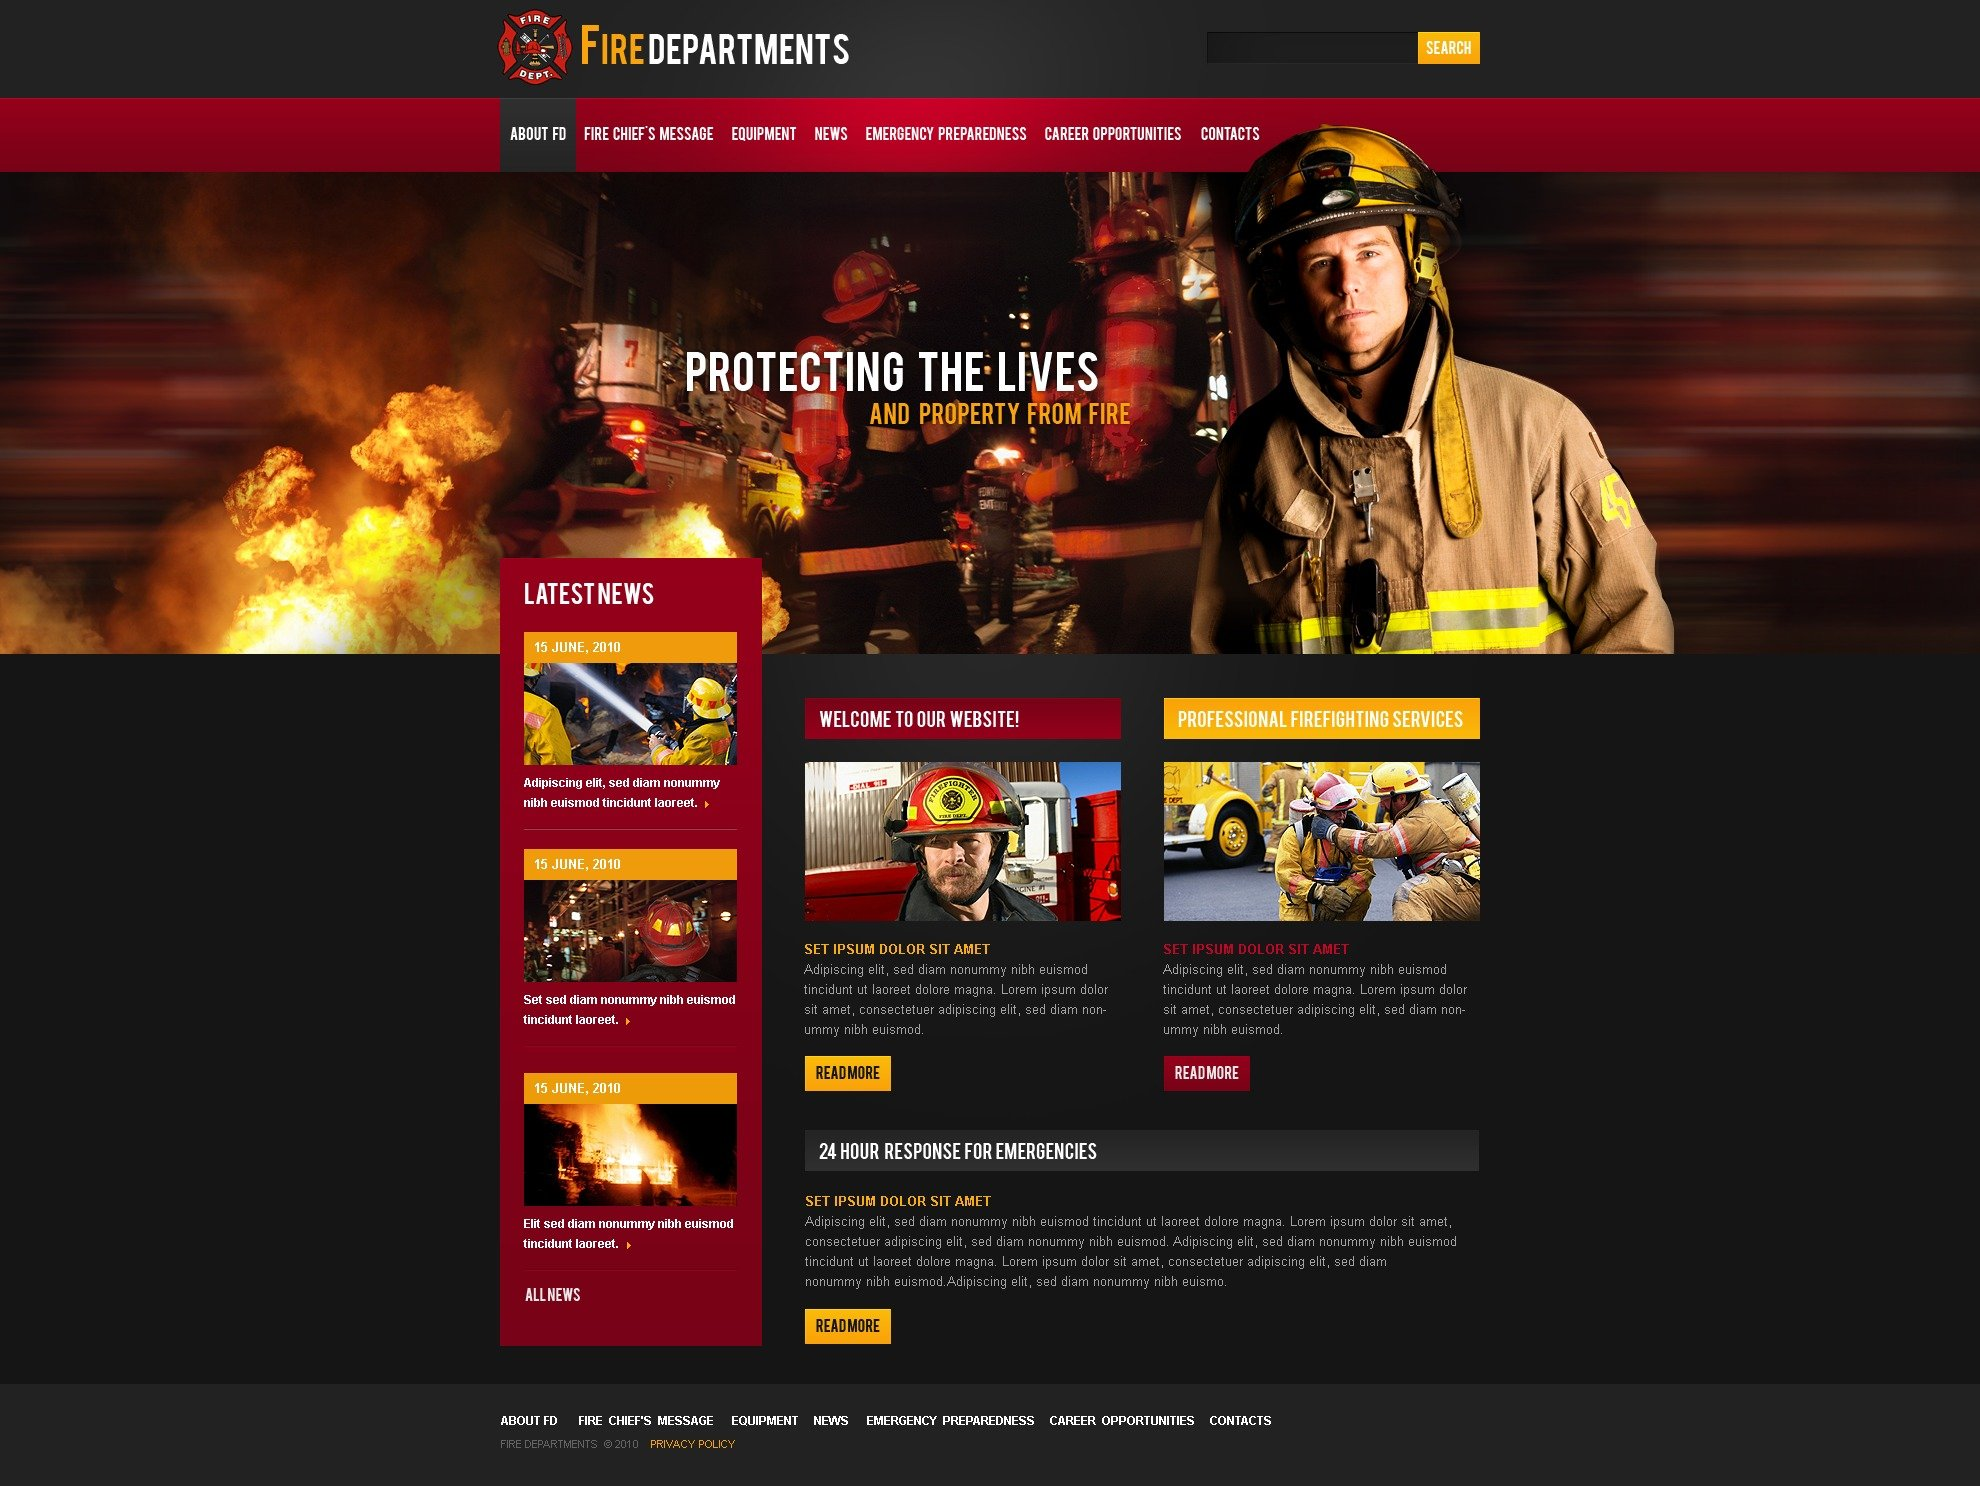 The Fire Department PSD Design 54080, one of the best PSD templates of its kind (society & culture, security, most popular, wide), also known as fire department PSD template, firemen PSD template, helmet PSD template, saving PSD template, station PSD template, water PSD template, training PSD template, courses PSD template, conflagration PSD template, alarm PSD template, firehouse PSD template, smoke PSD template, posture PSD template, sensor PSD template, nozzle PSD template, tag PSD template, foam and related with fire department, firemen, helmet, saving, station, water, training, courses, conflagration, alarm, firehouse, smoke, posture, sensor, nozzle, tag, foam, etc.